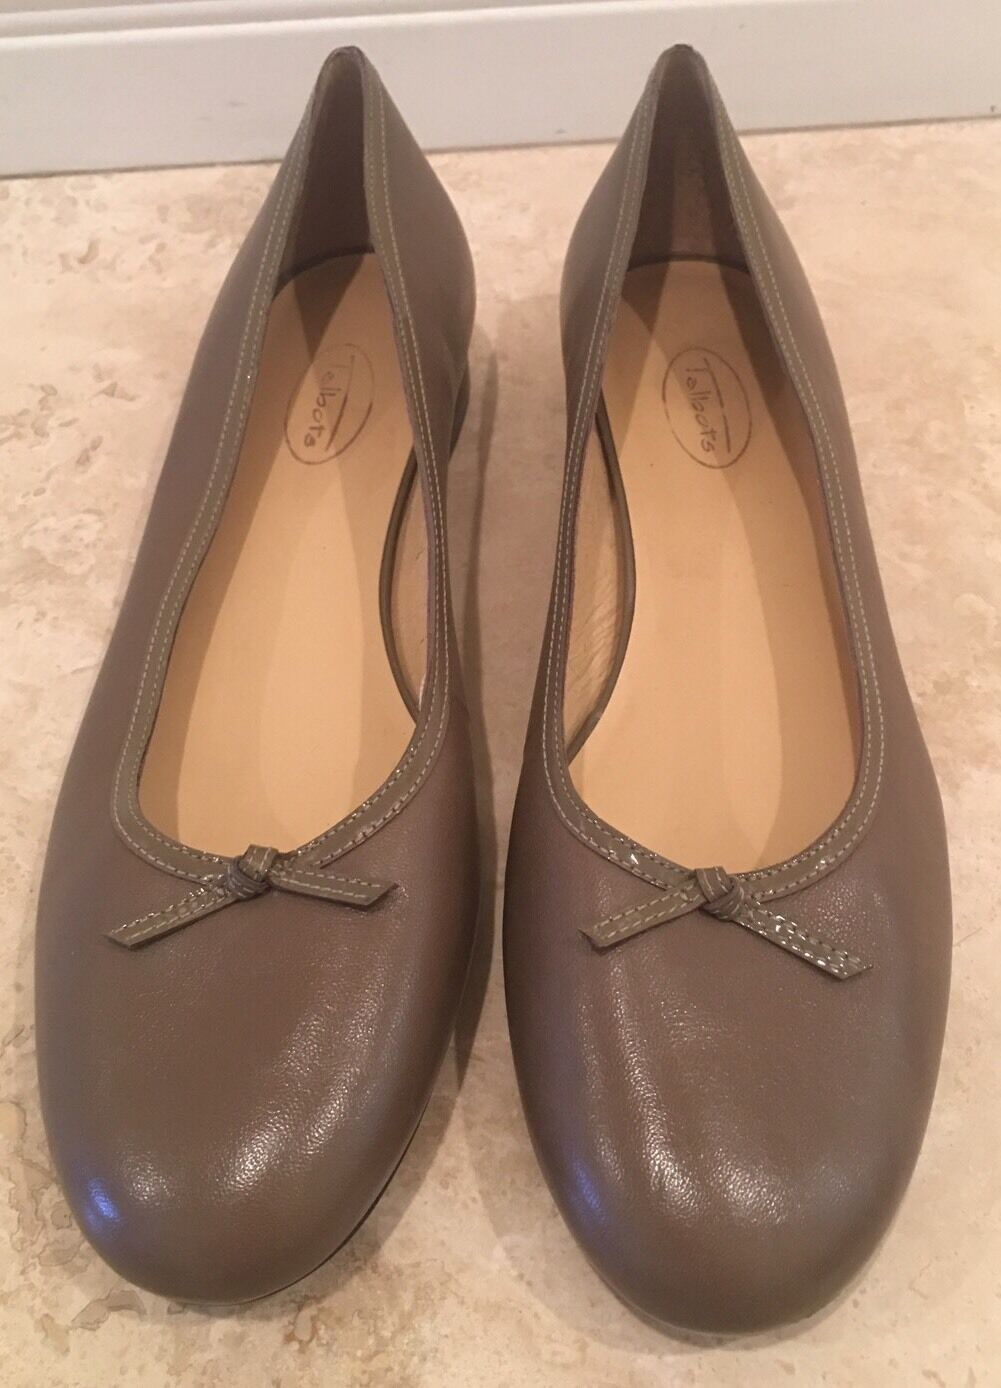 TALBOTS Tan Taupe Leather Classic Ballet Flats w/ Bows Woman's Rare Sz 11M NEW!